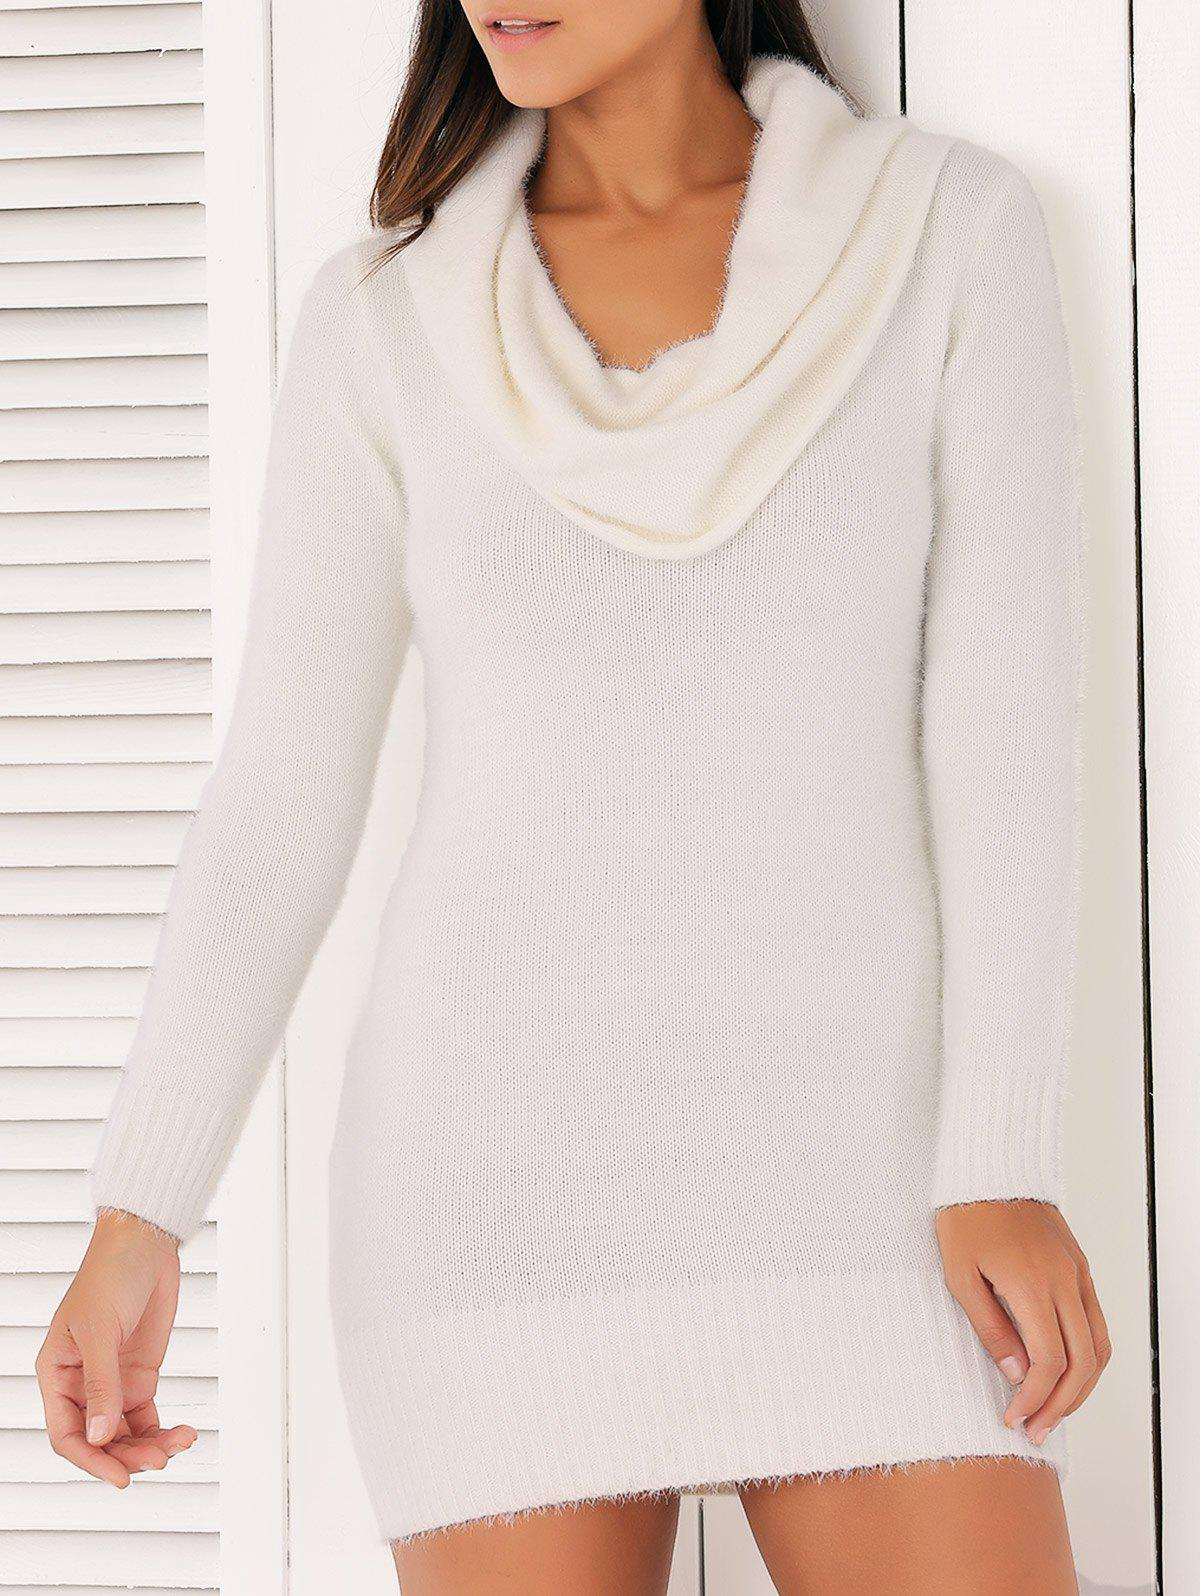 Brief Cowl Collar Long Sleeve Sweater Dress For Women - ONE SIZE WHITE